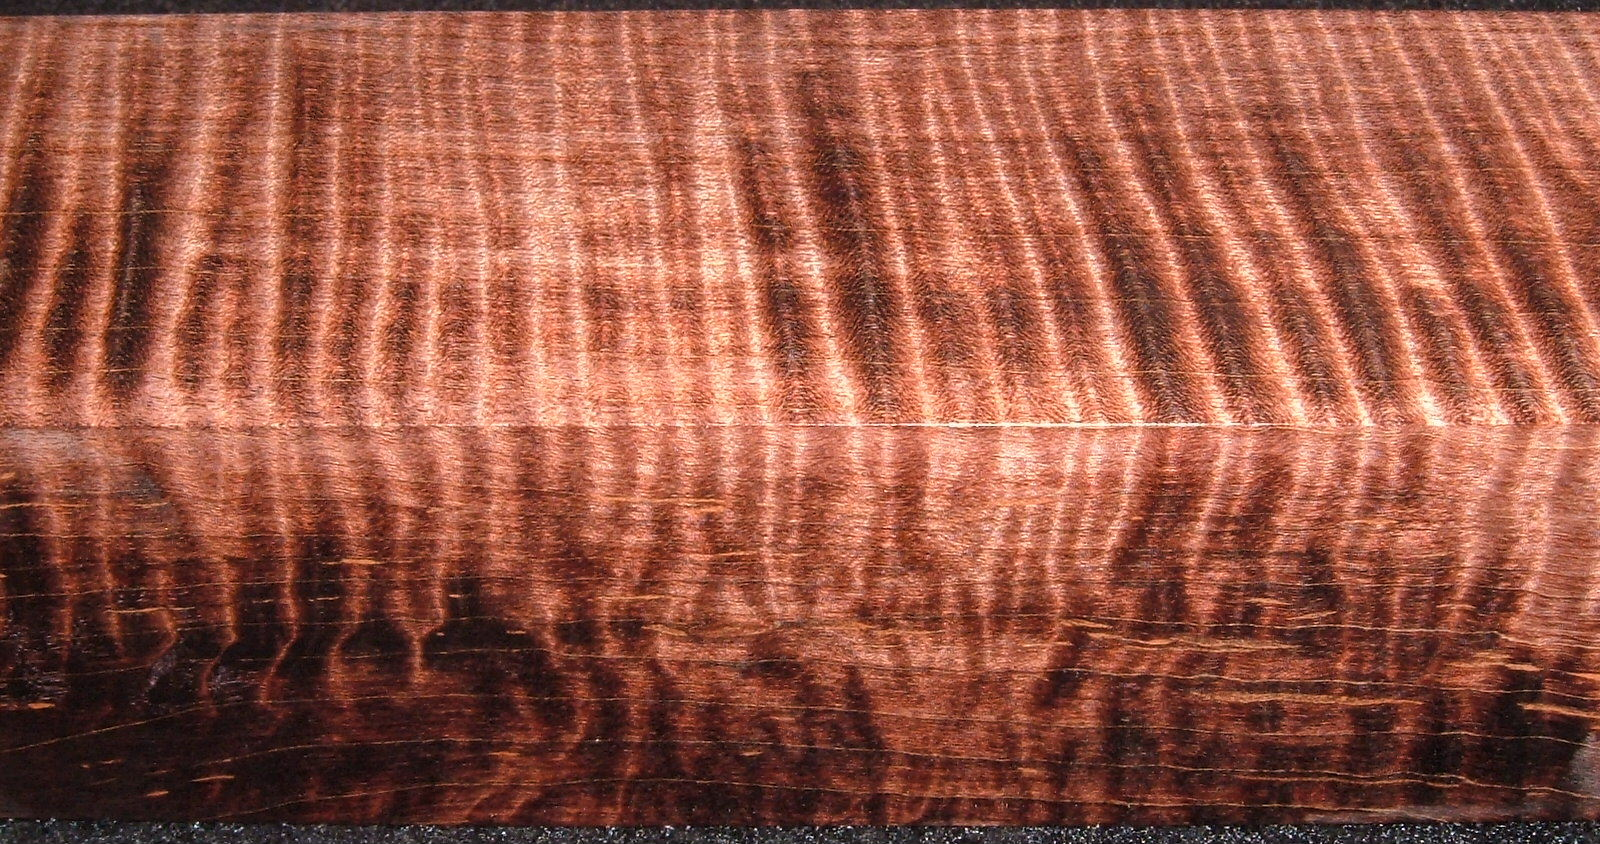 Z203, 1-7/8x1-7/8x7-1/2, Brown, Curly Tiger Maple Dyed Stabilized, wood turning block